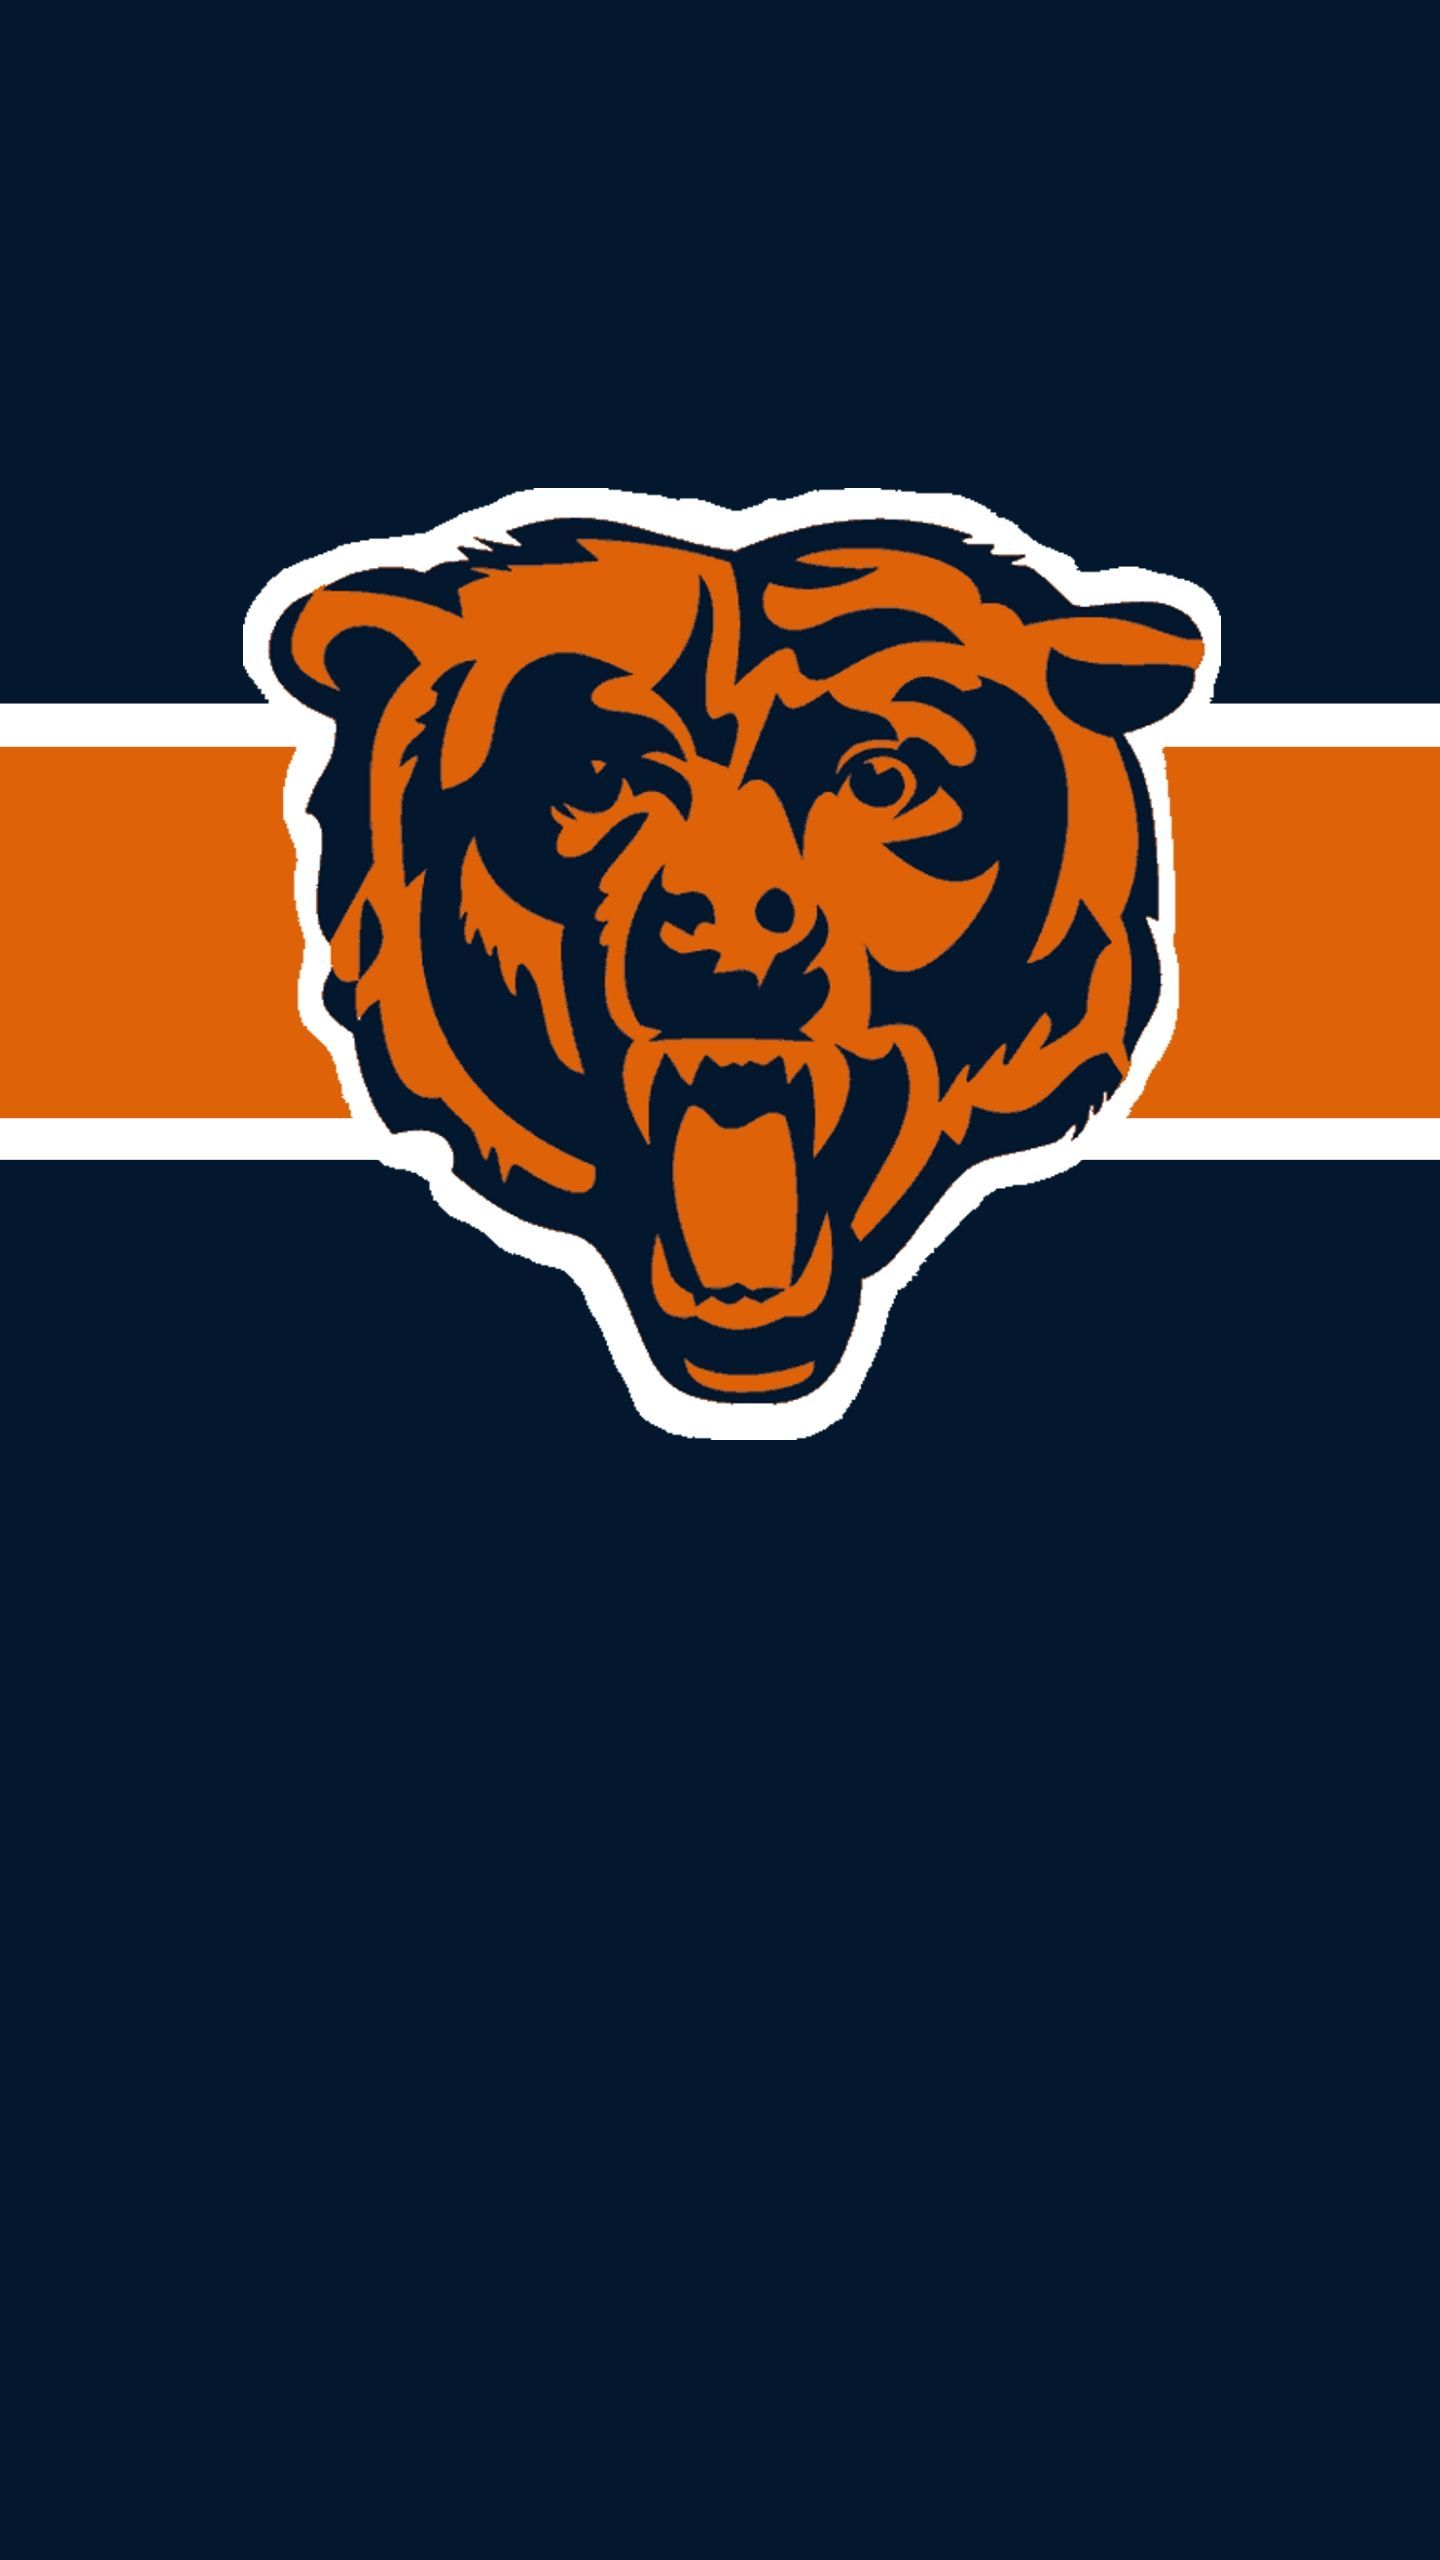 Download Great Pixar Background For Android Phone Today Chicago Bears Wallpaper Bear Wallpaper Chicago Bears Logo